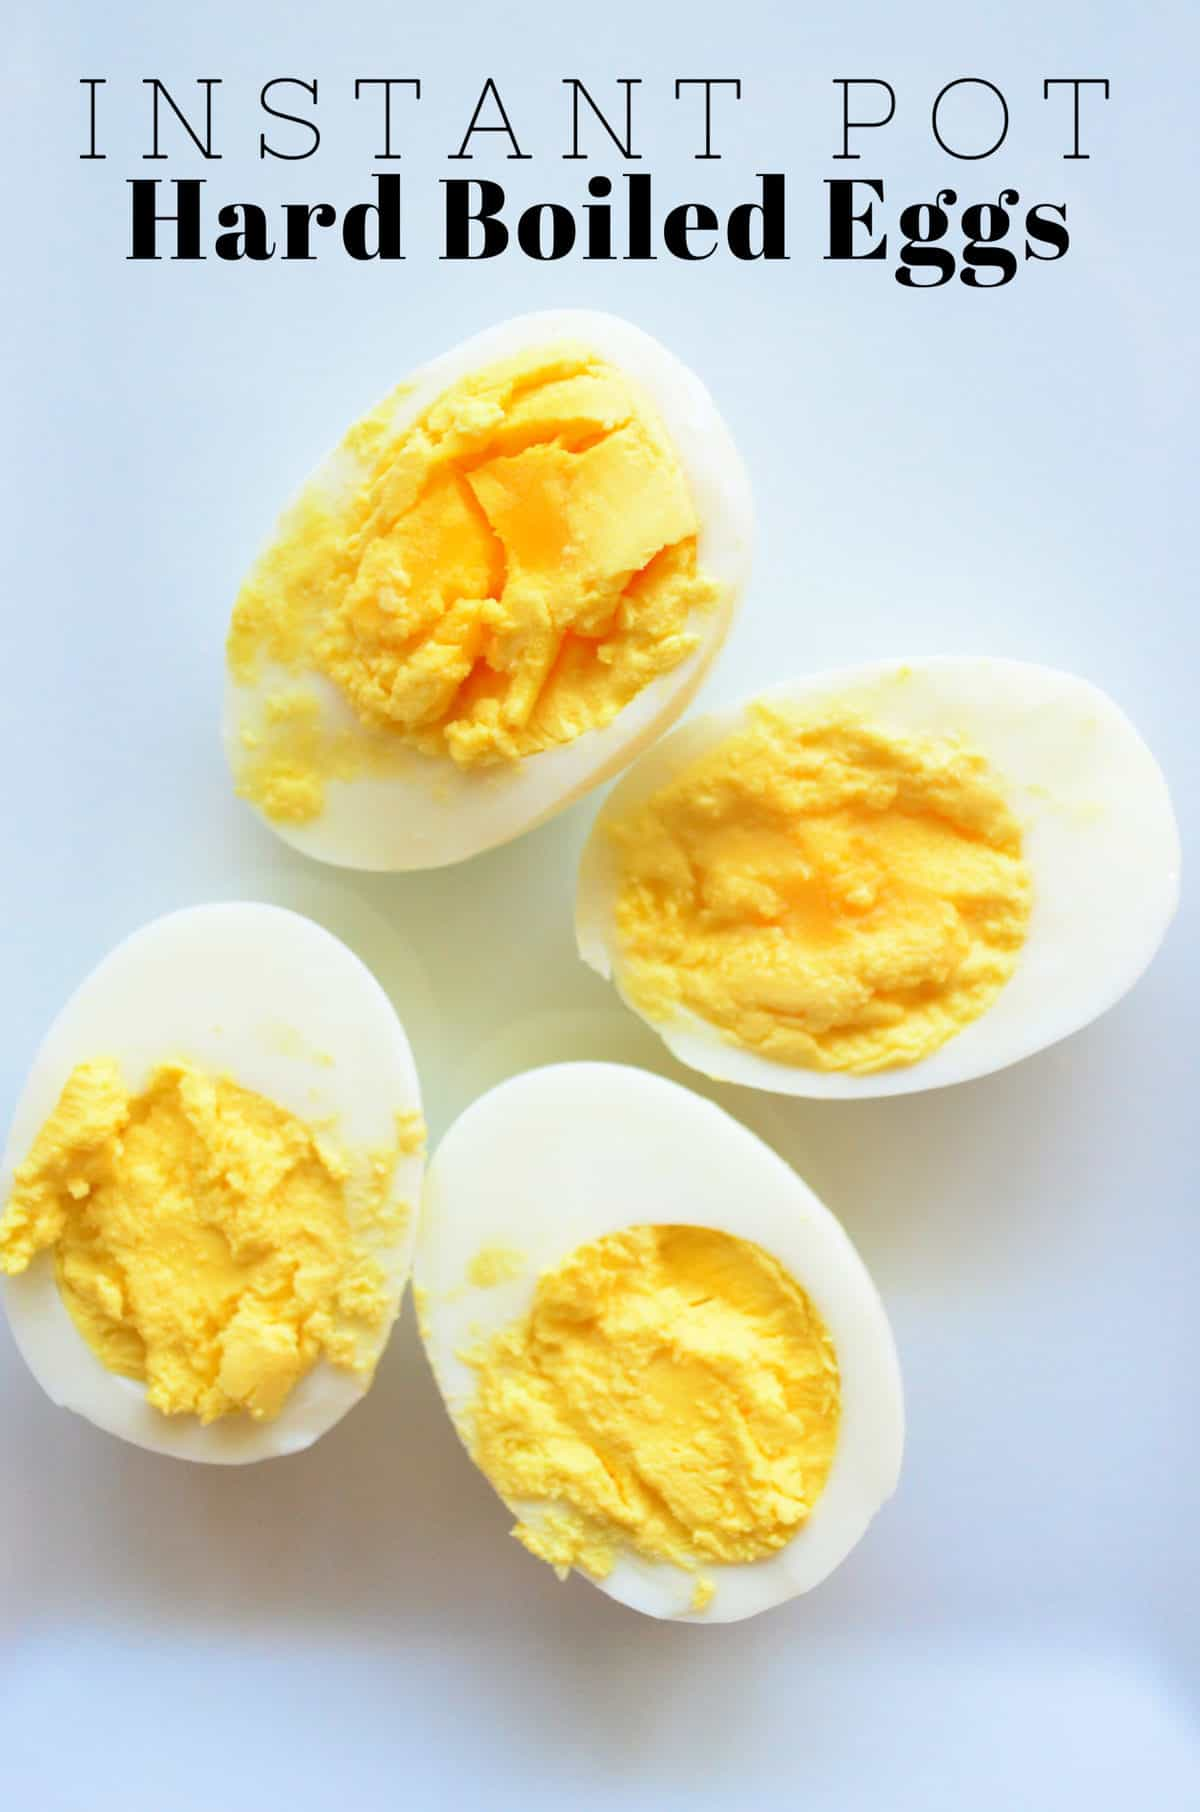 4 halves of hard boiled eggs yolk up with white background and title text.